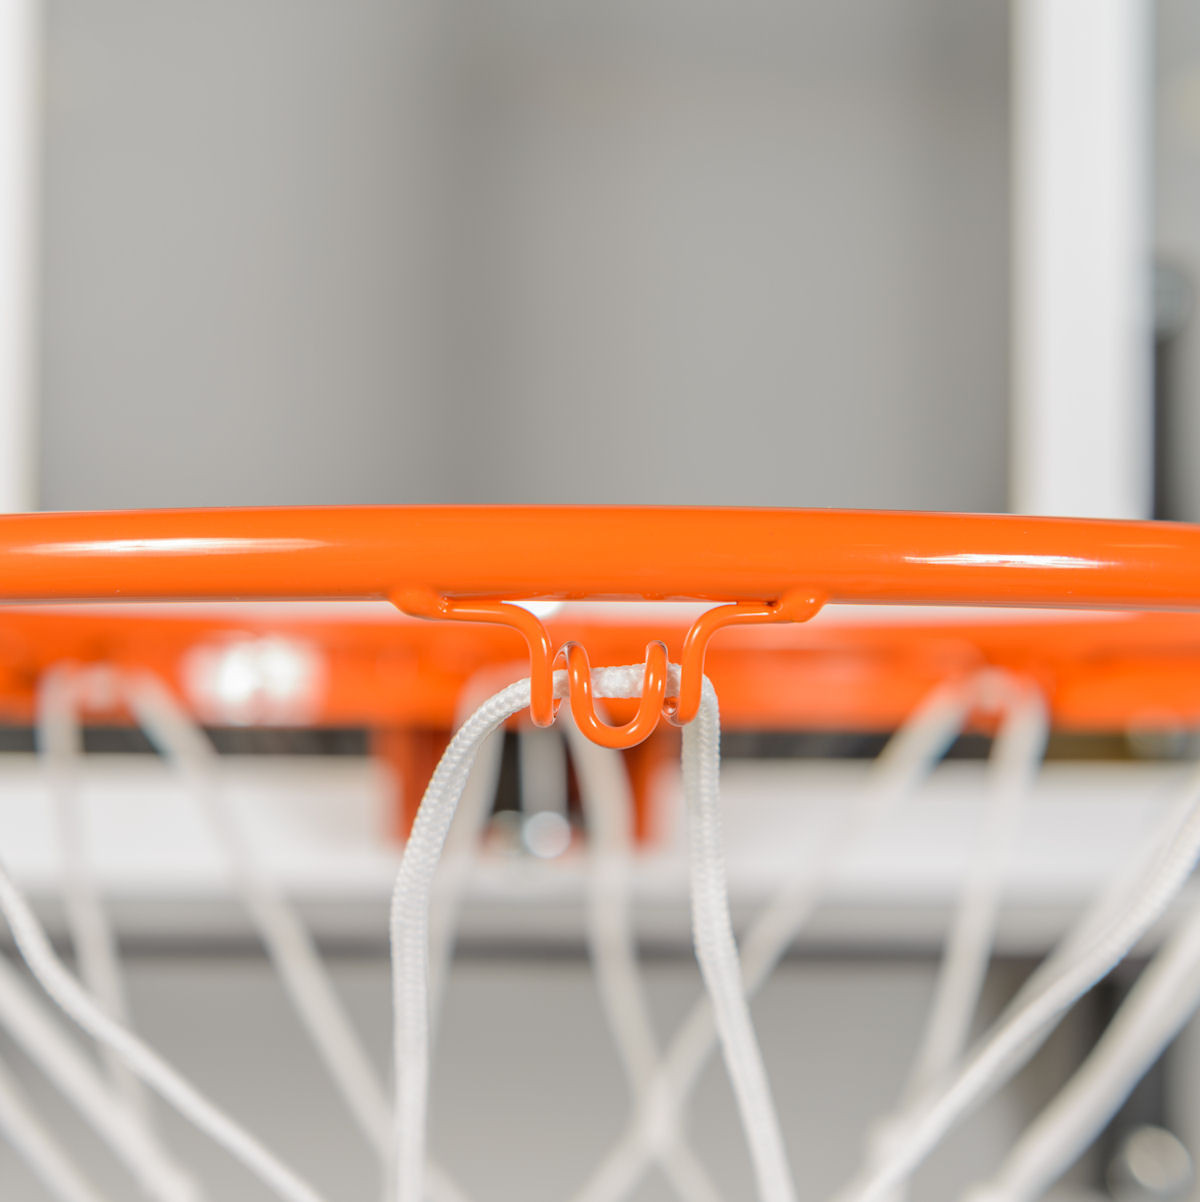 Close up view of rim eyelet for net attachment